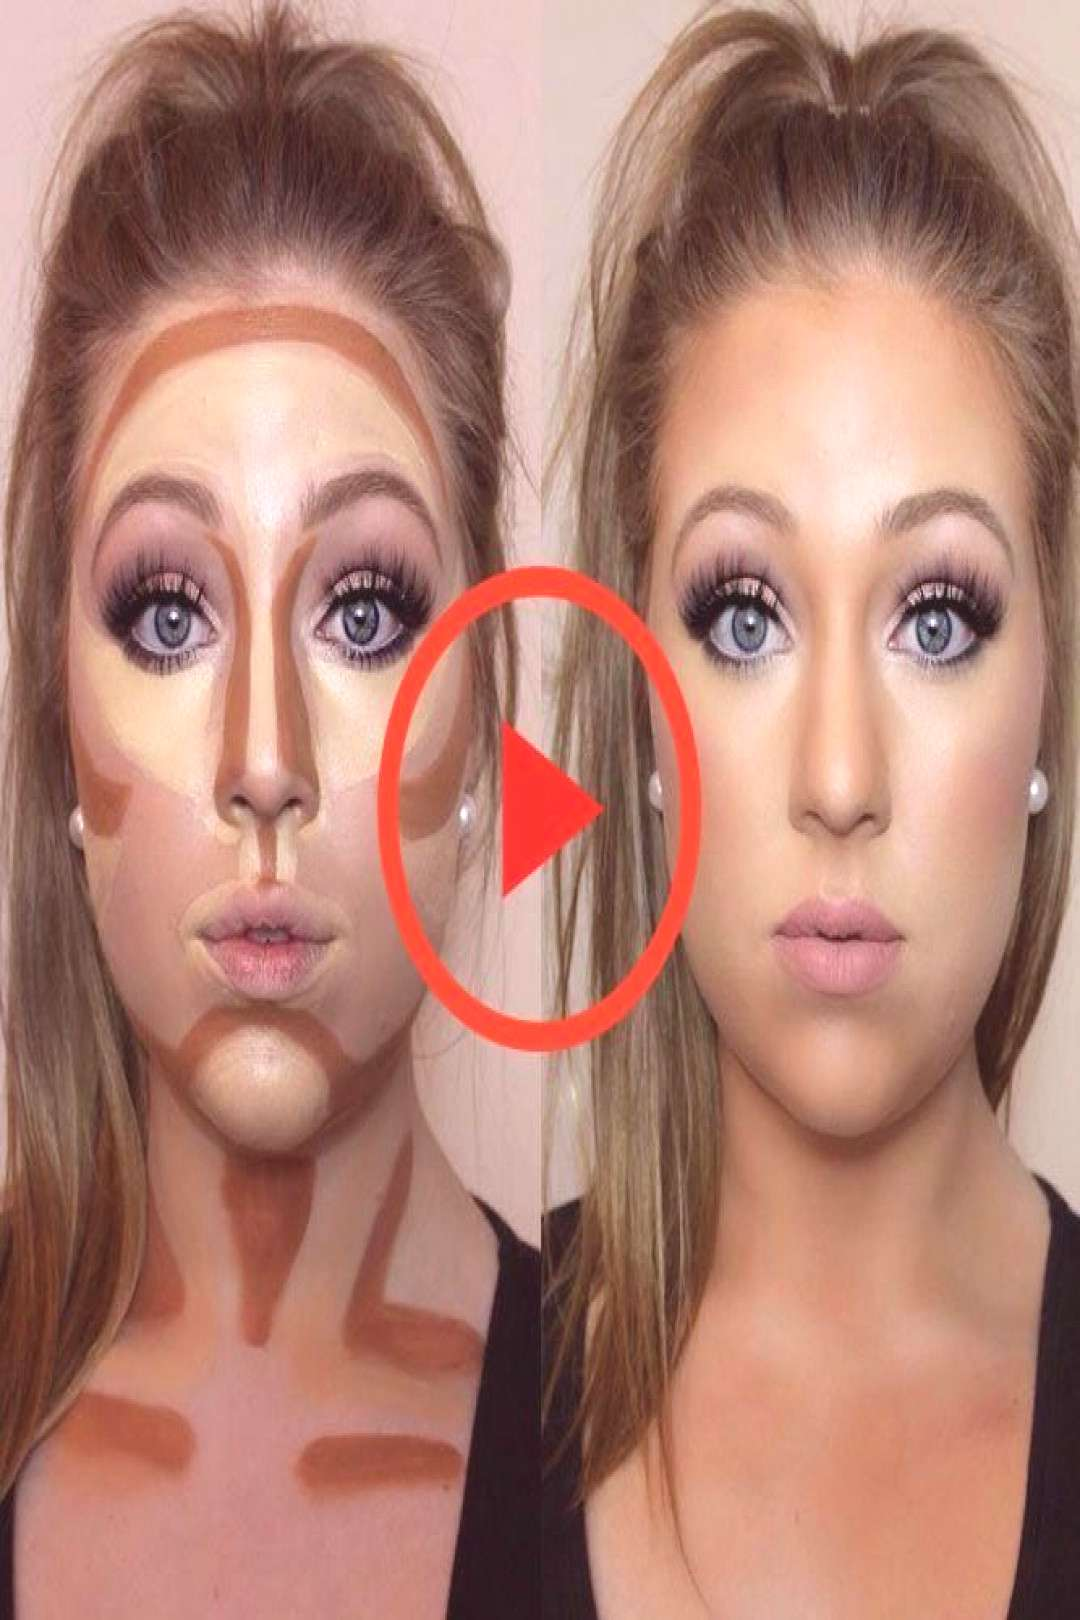 Simple contouring for beginners Image 1 - makeup secrets